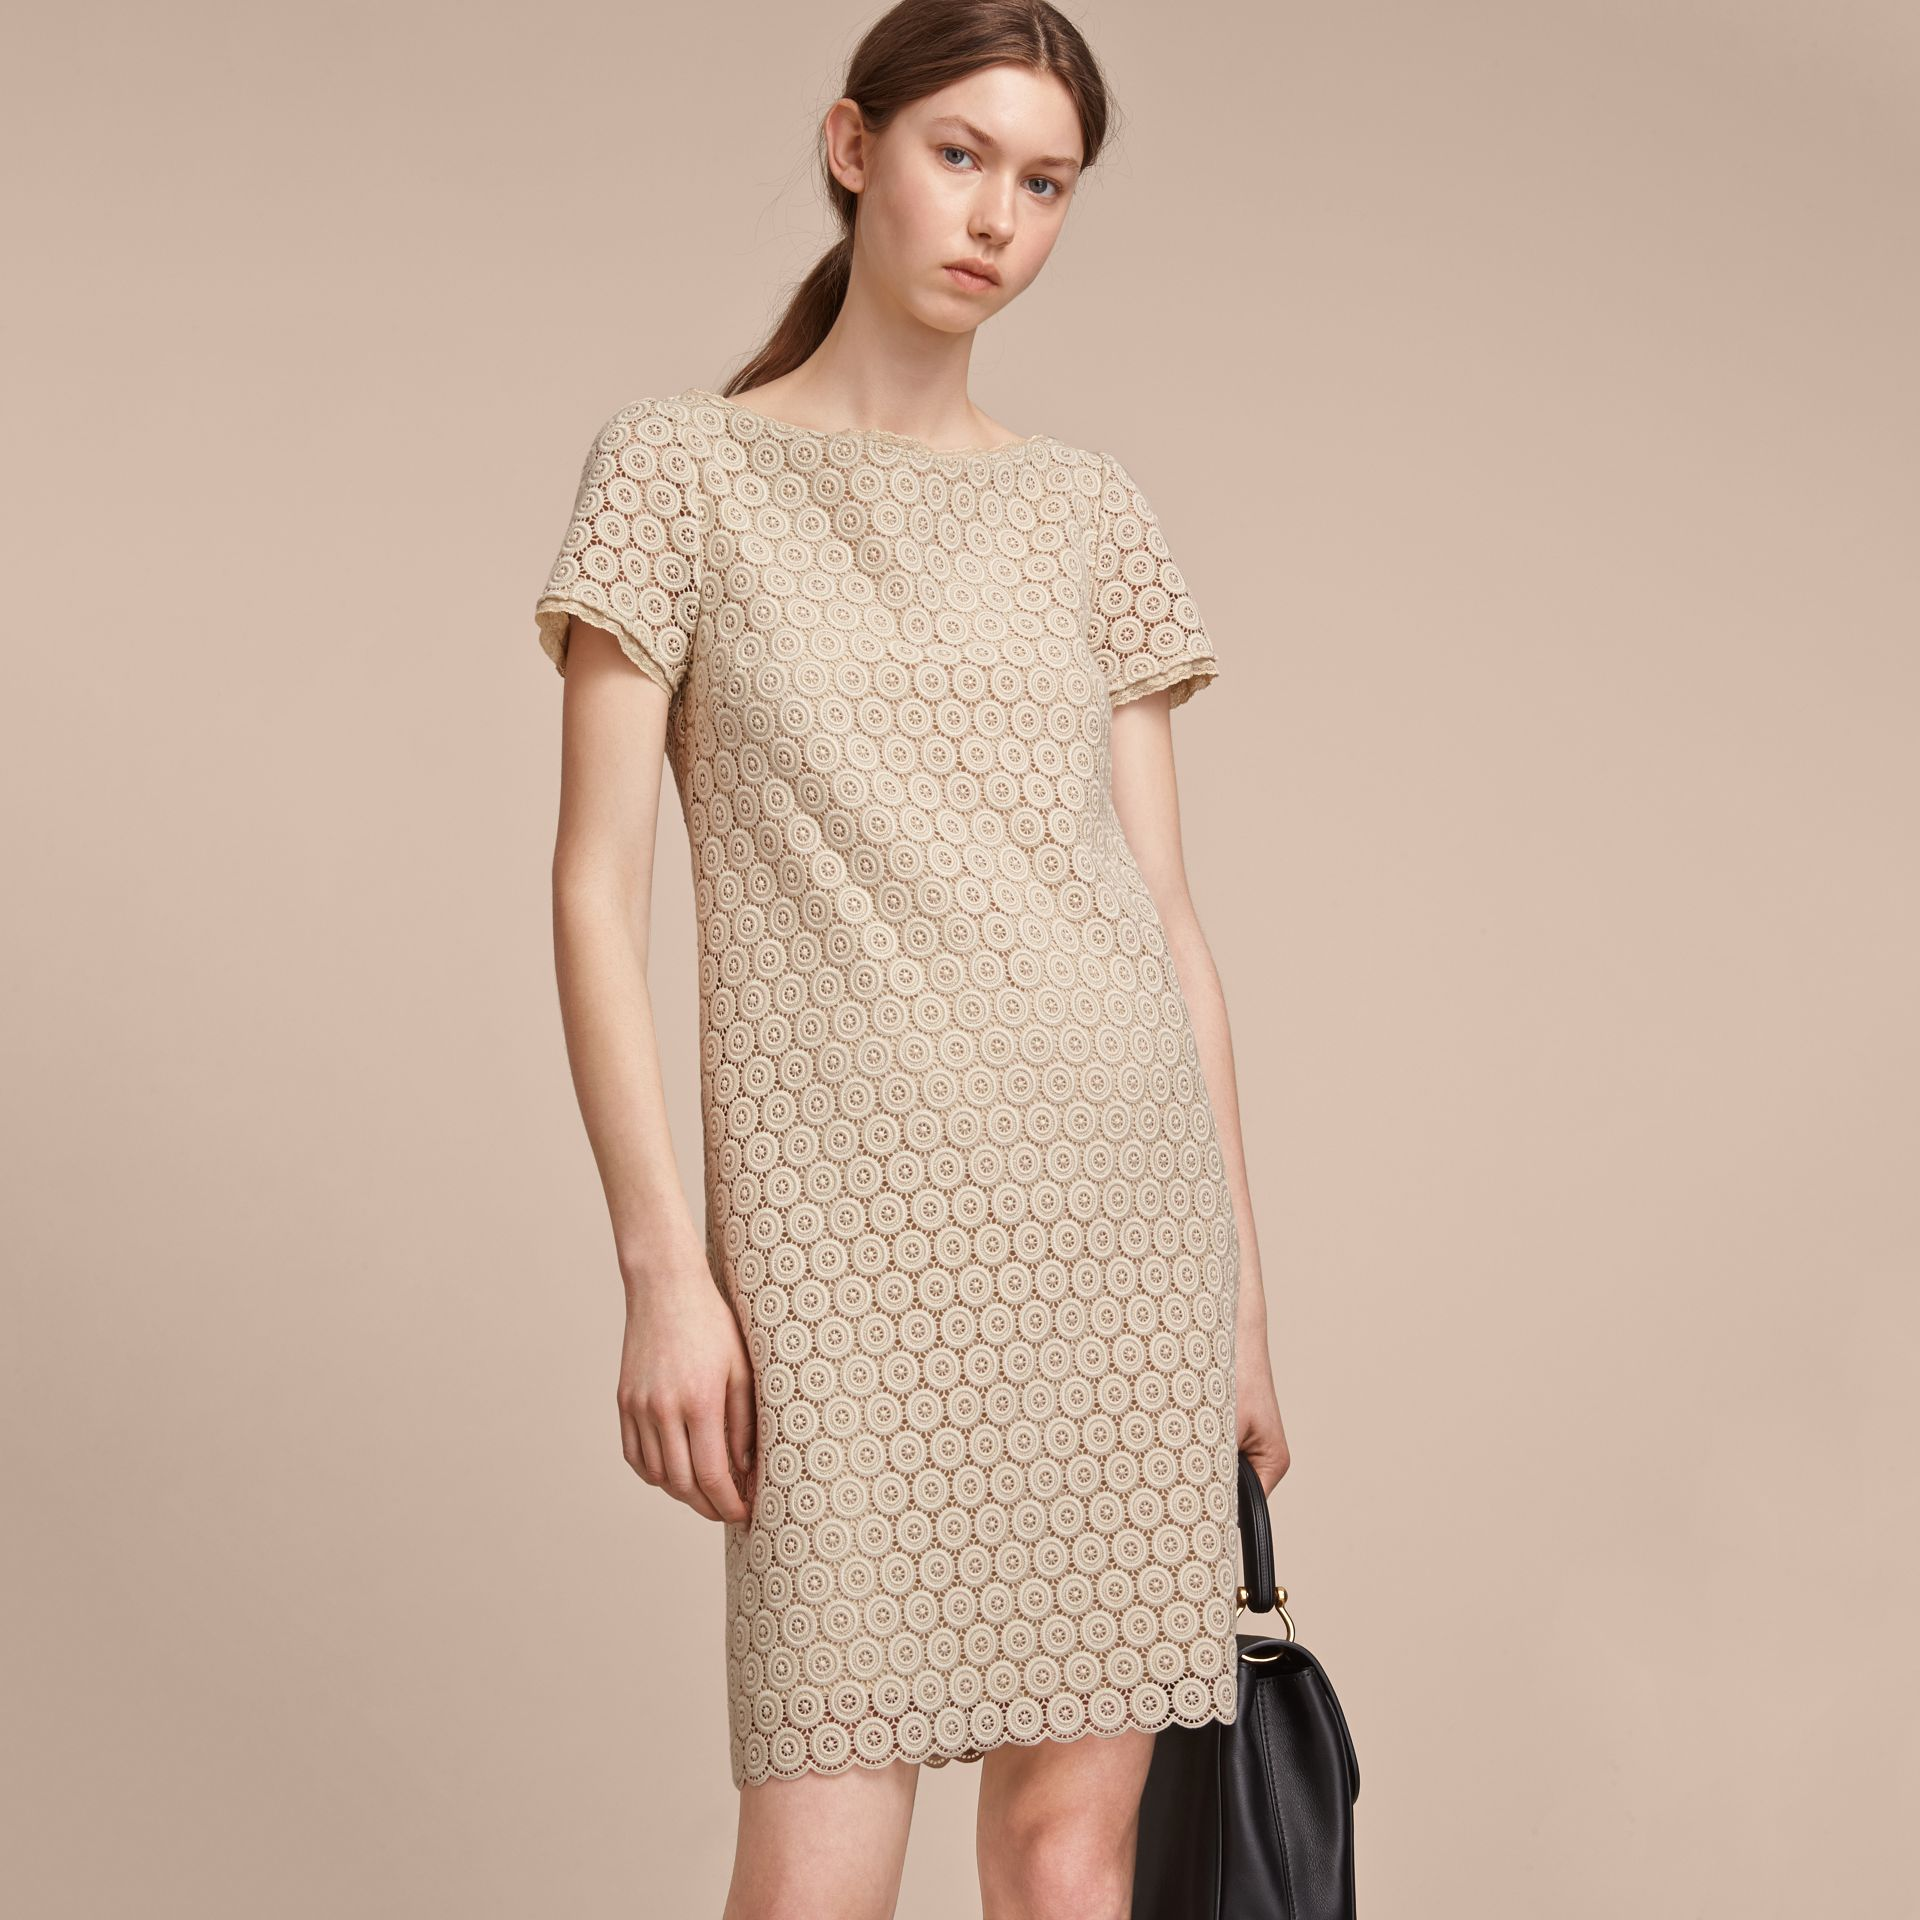 Short-sleeve Geometric Lace Dress in Stone - Women | Burberry - gallery image 6